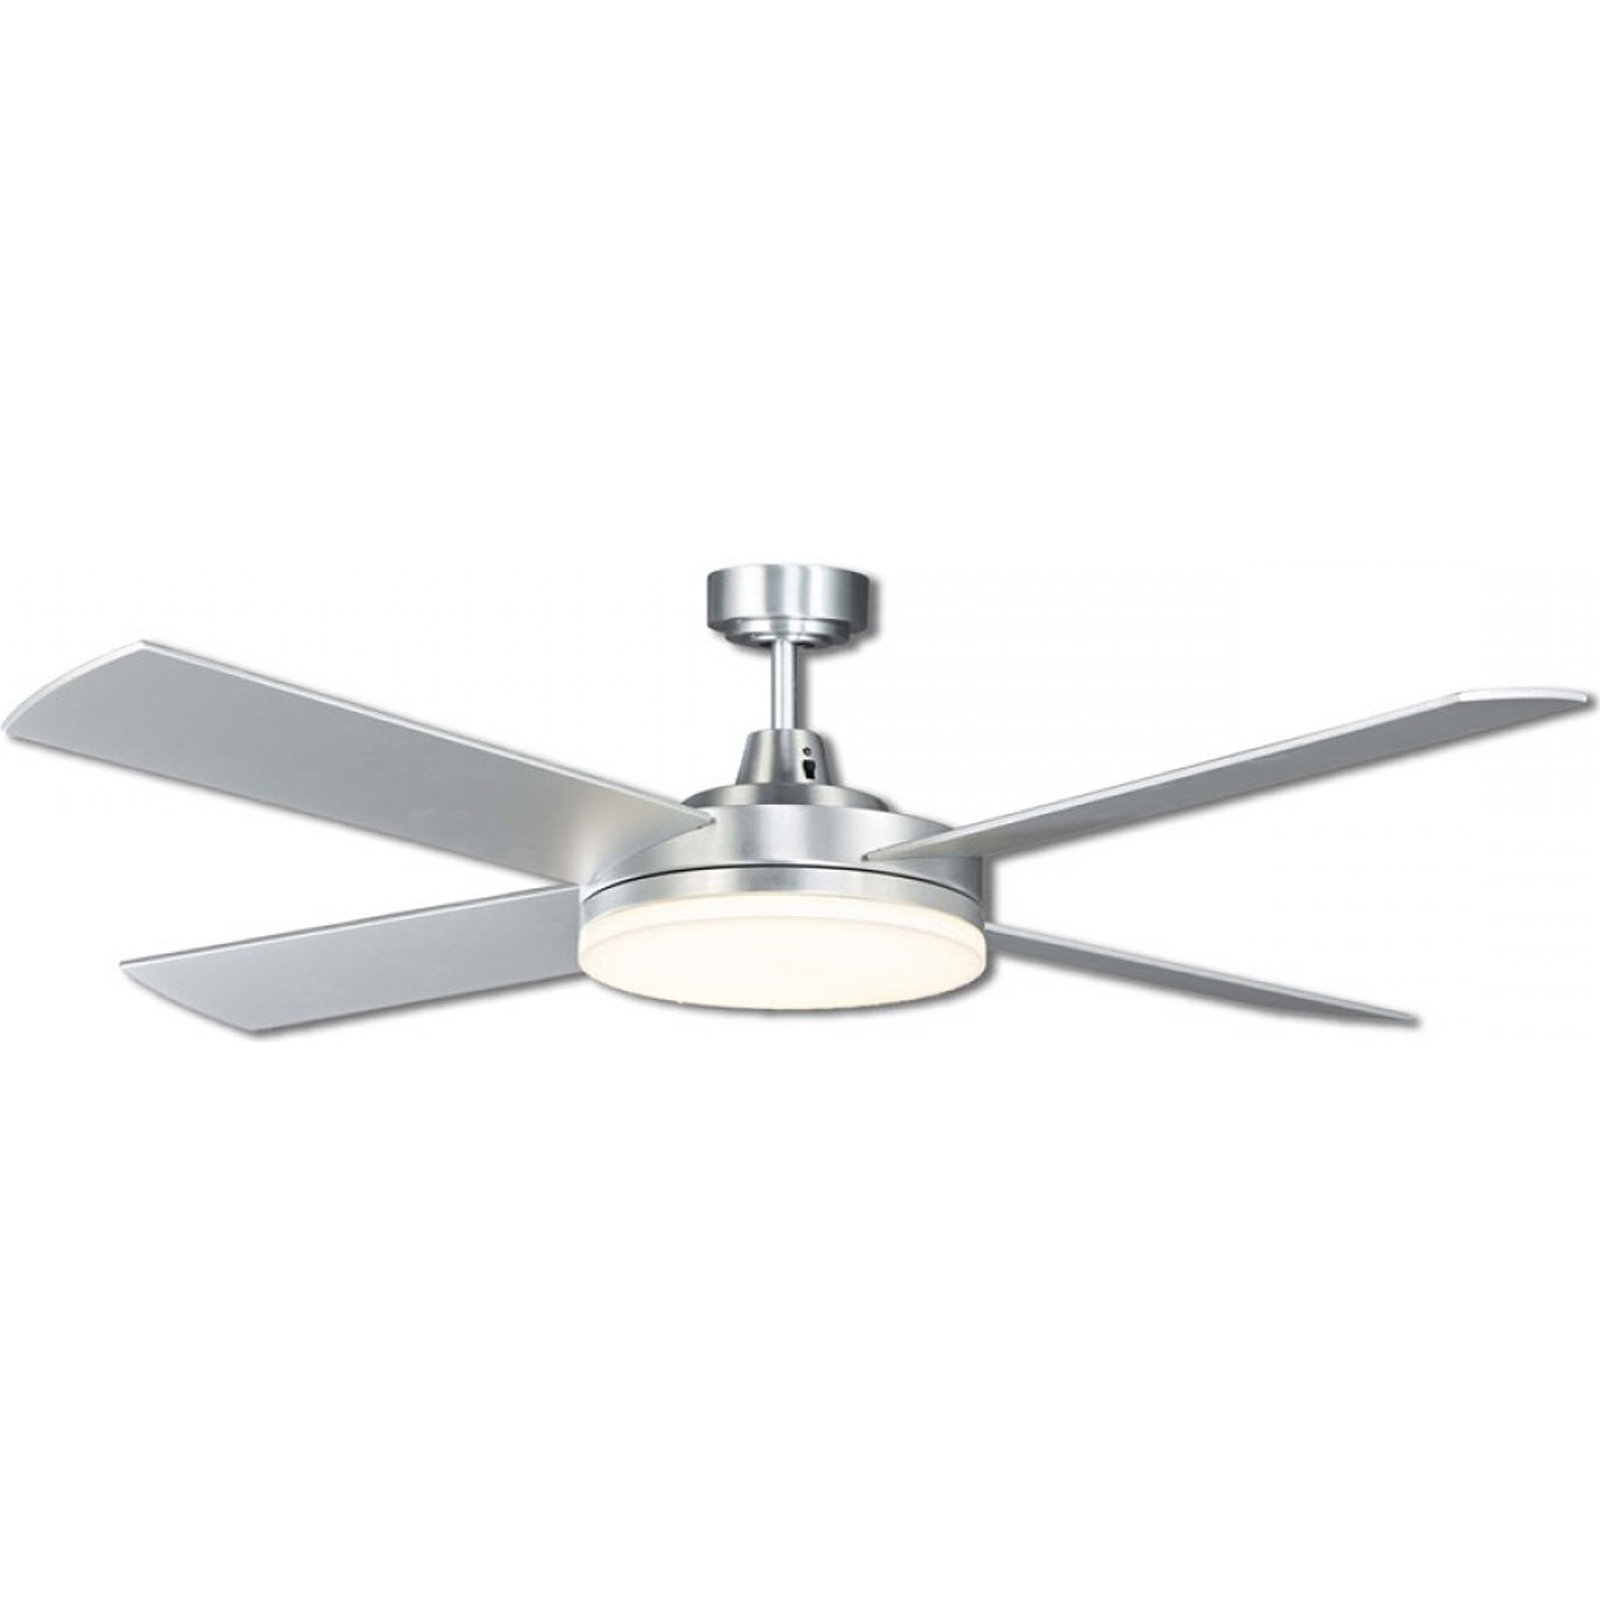 Outdoor Ceiling Fans With Led Lights Within Best And Newest Outdoor Ceiling Fans With Led Ligh On Hunter Ceiling Fans With Led (View 16 of 20)